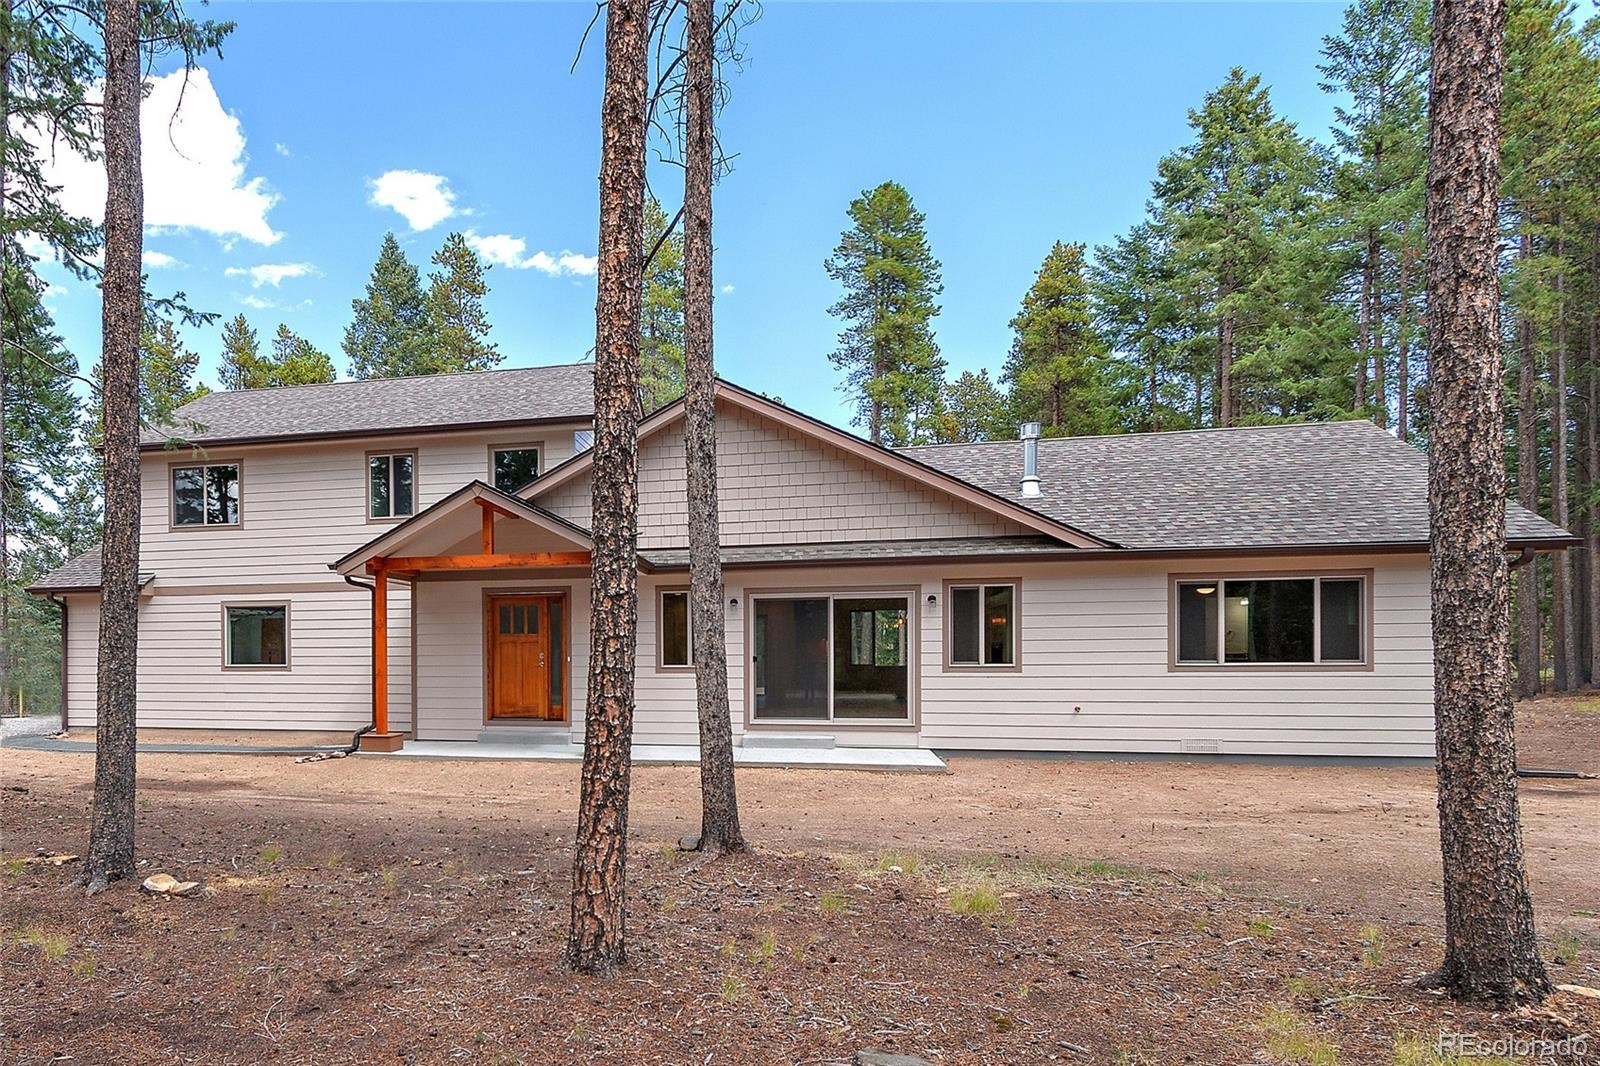 MLS# 3859300 - 2 - 10892 Barker Avenue, Conifer, CO 80433